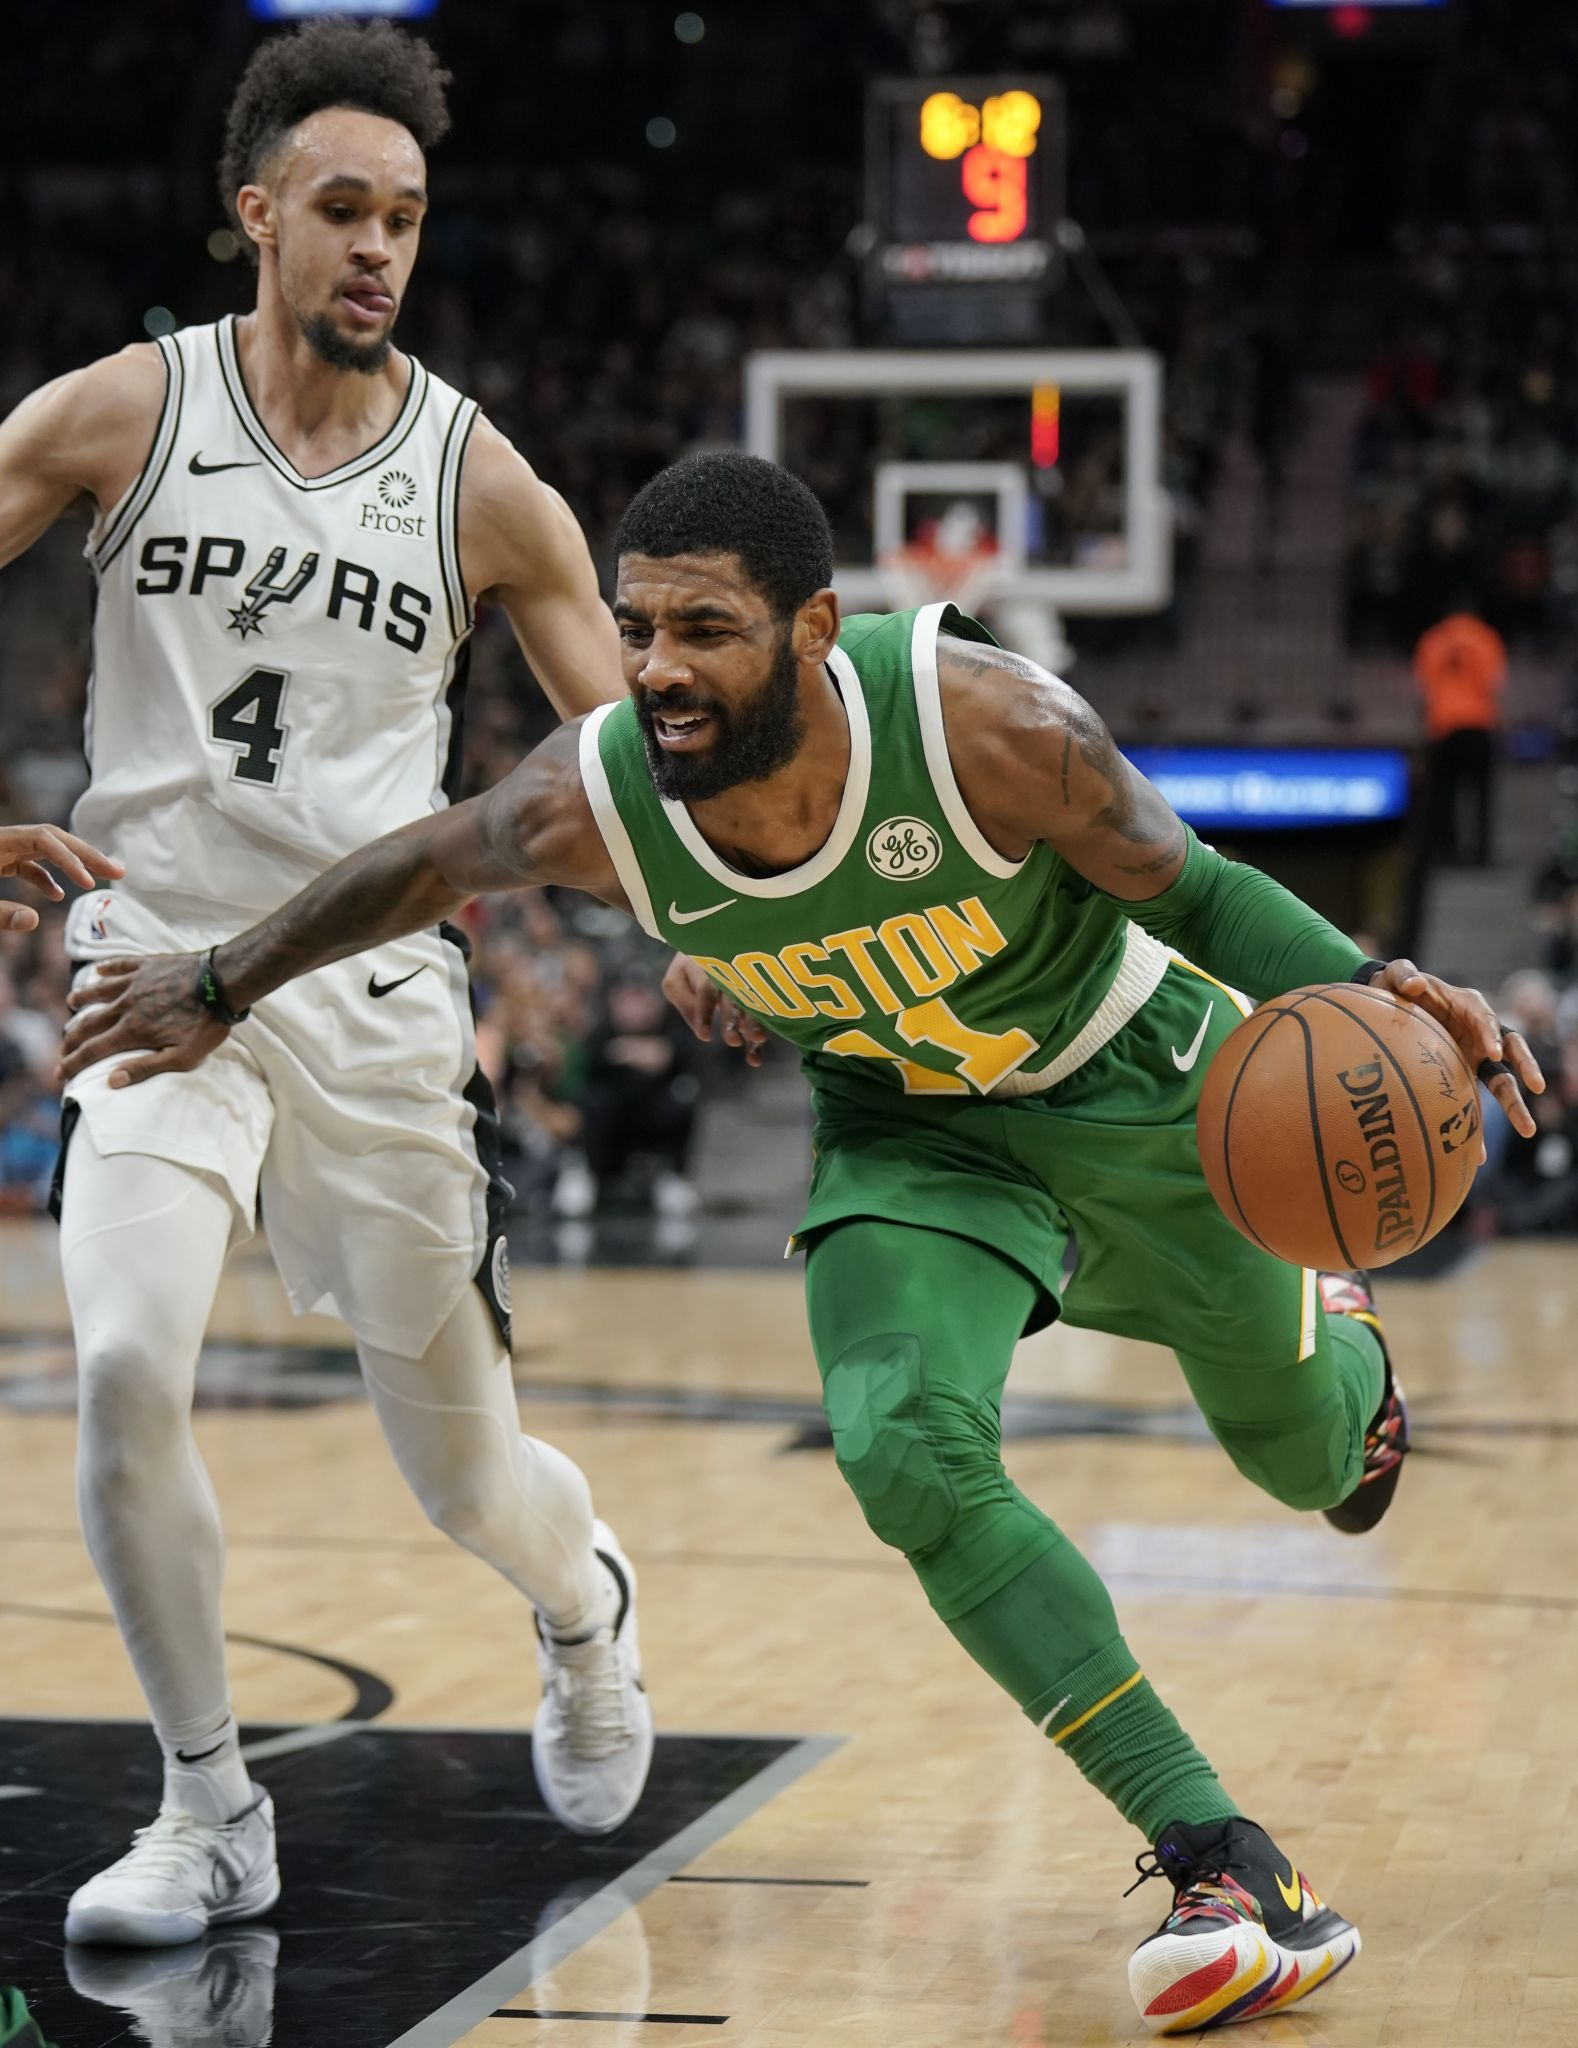 Spurs down Celtics after scoring 46 in third quarter